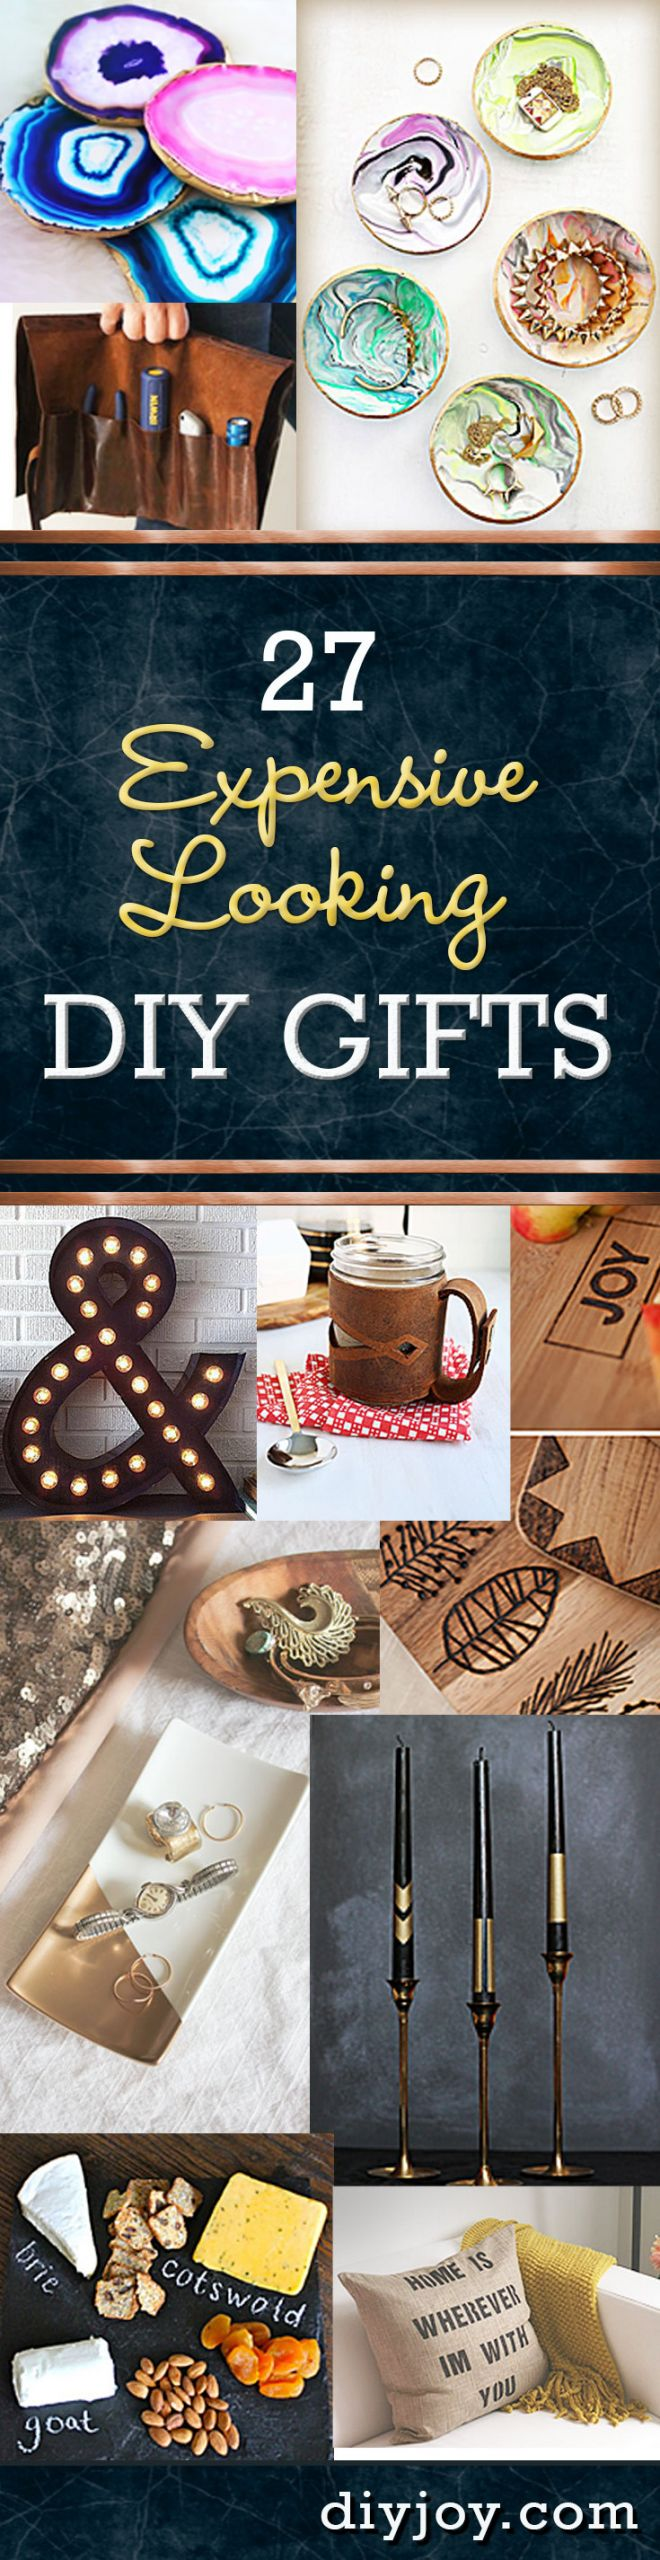 Unique DIY Gifts  27 Expensive Looking Inexpensive DIY Gifts